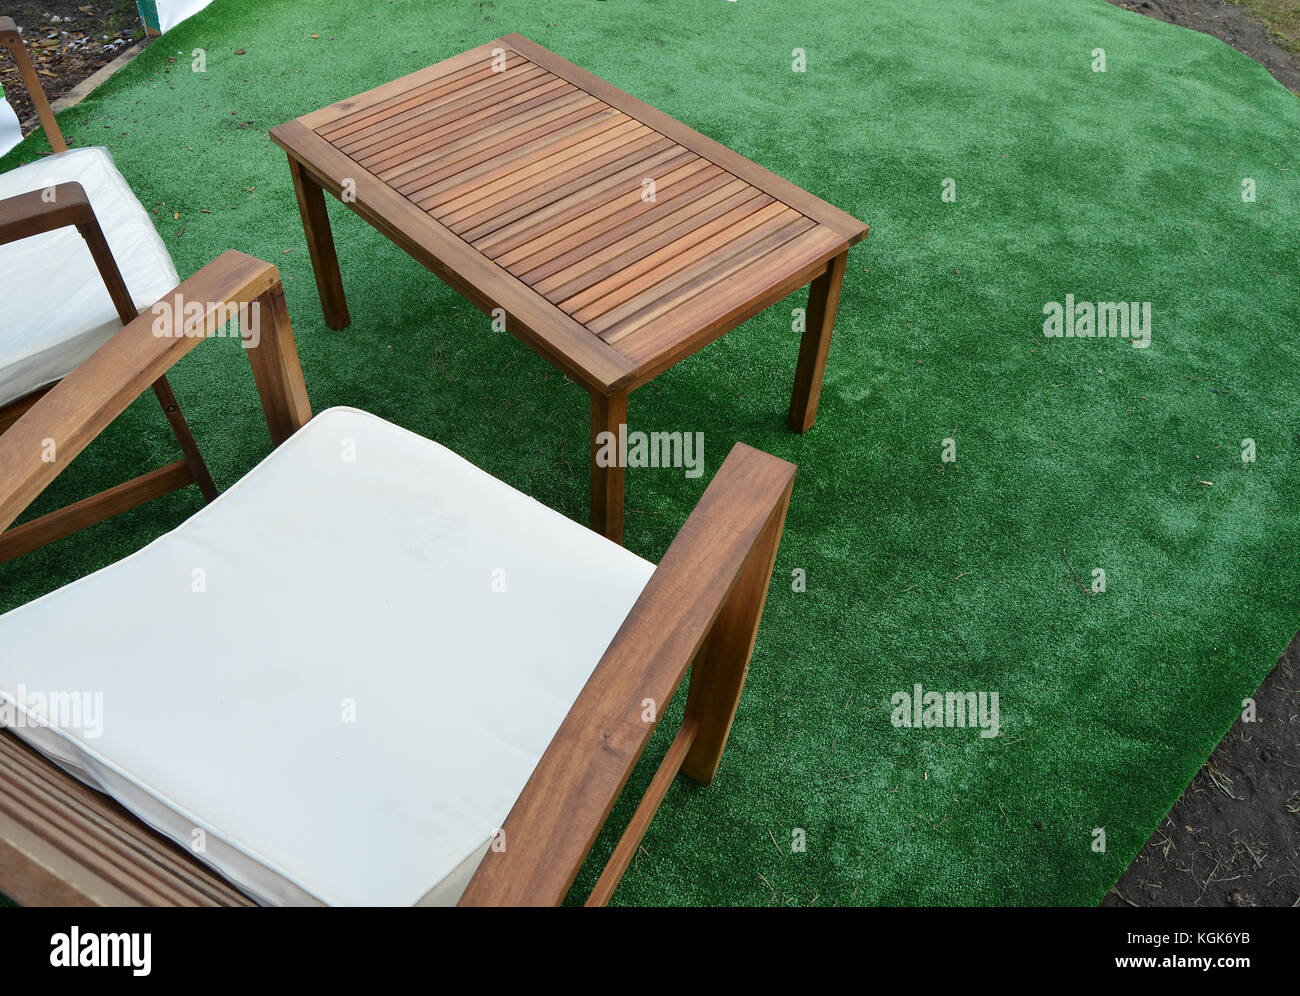 Design And Garden Furniture Table Chairs Top View